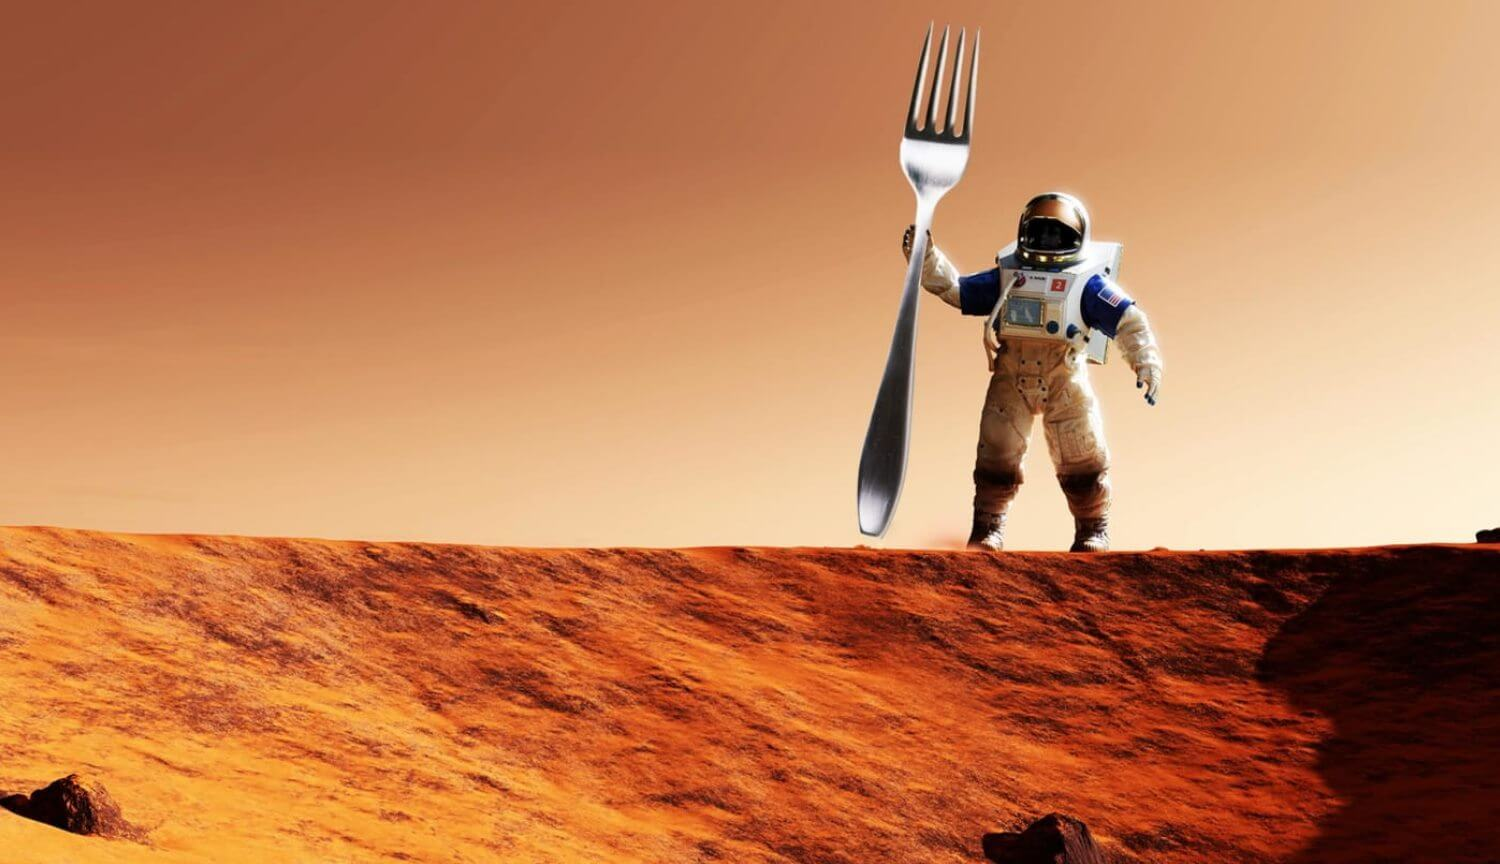 You need to eat and drink to survive on Mars?